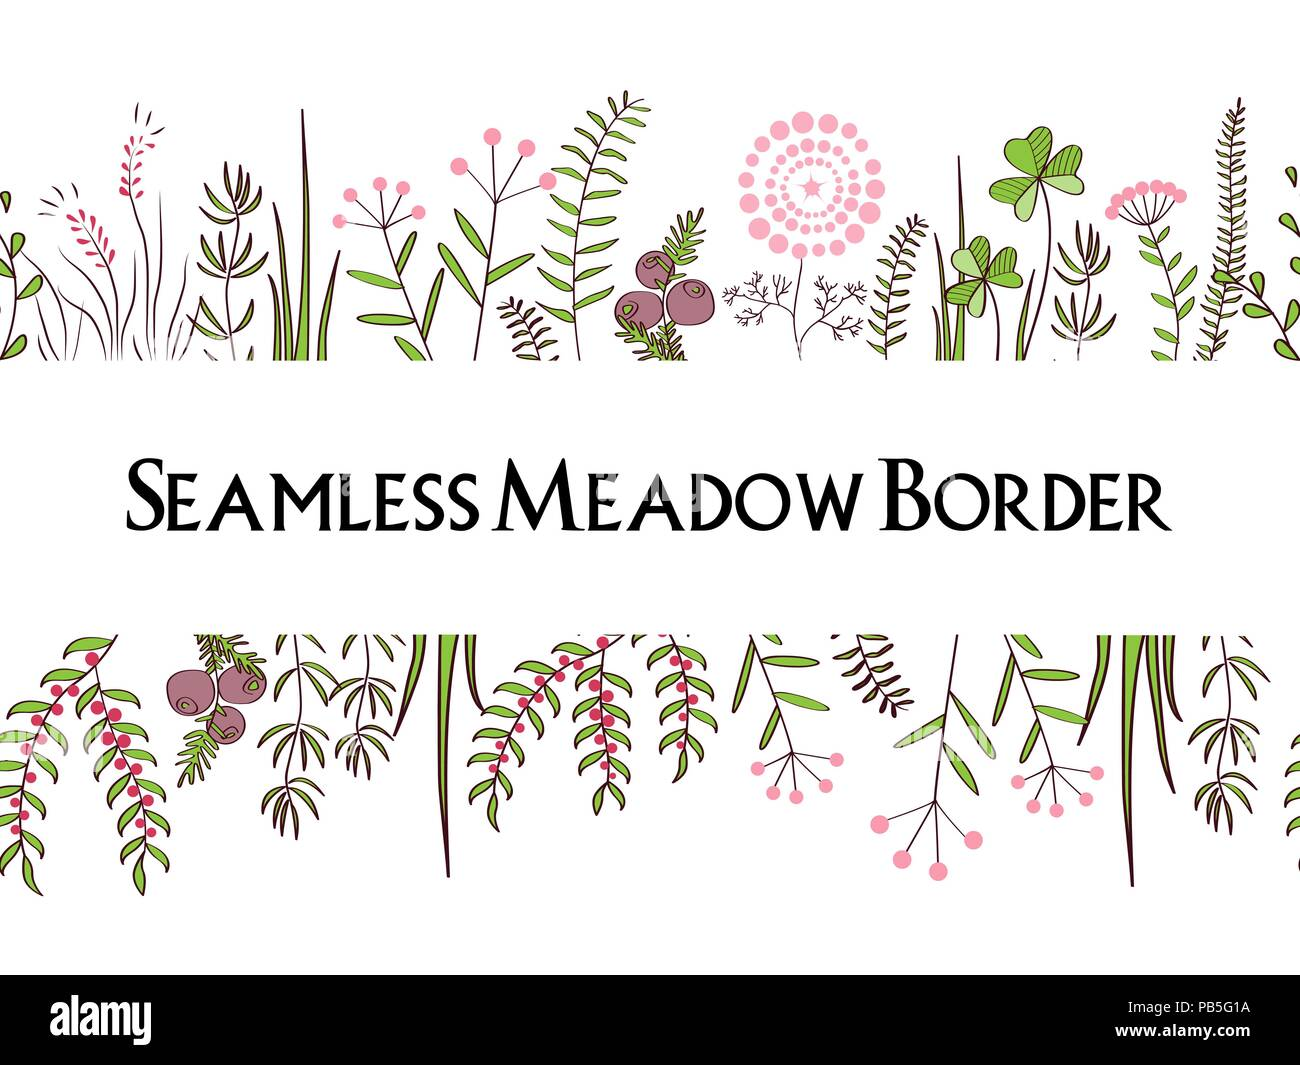 Meadow herbs seamless borders background floral illustration for meadow herbs seamless borders background floral illustration for posters greeting cards and other printing projects m4hsunfo